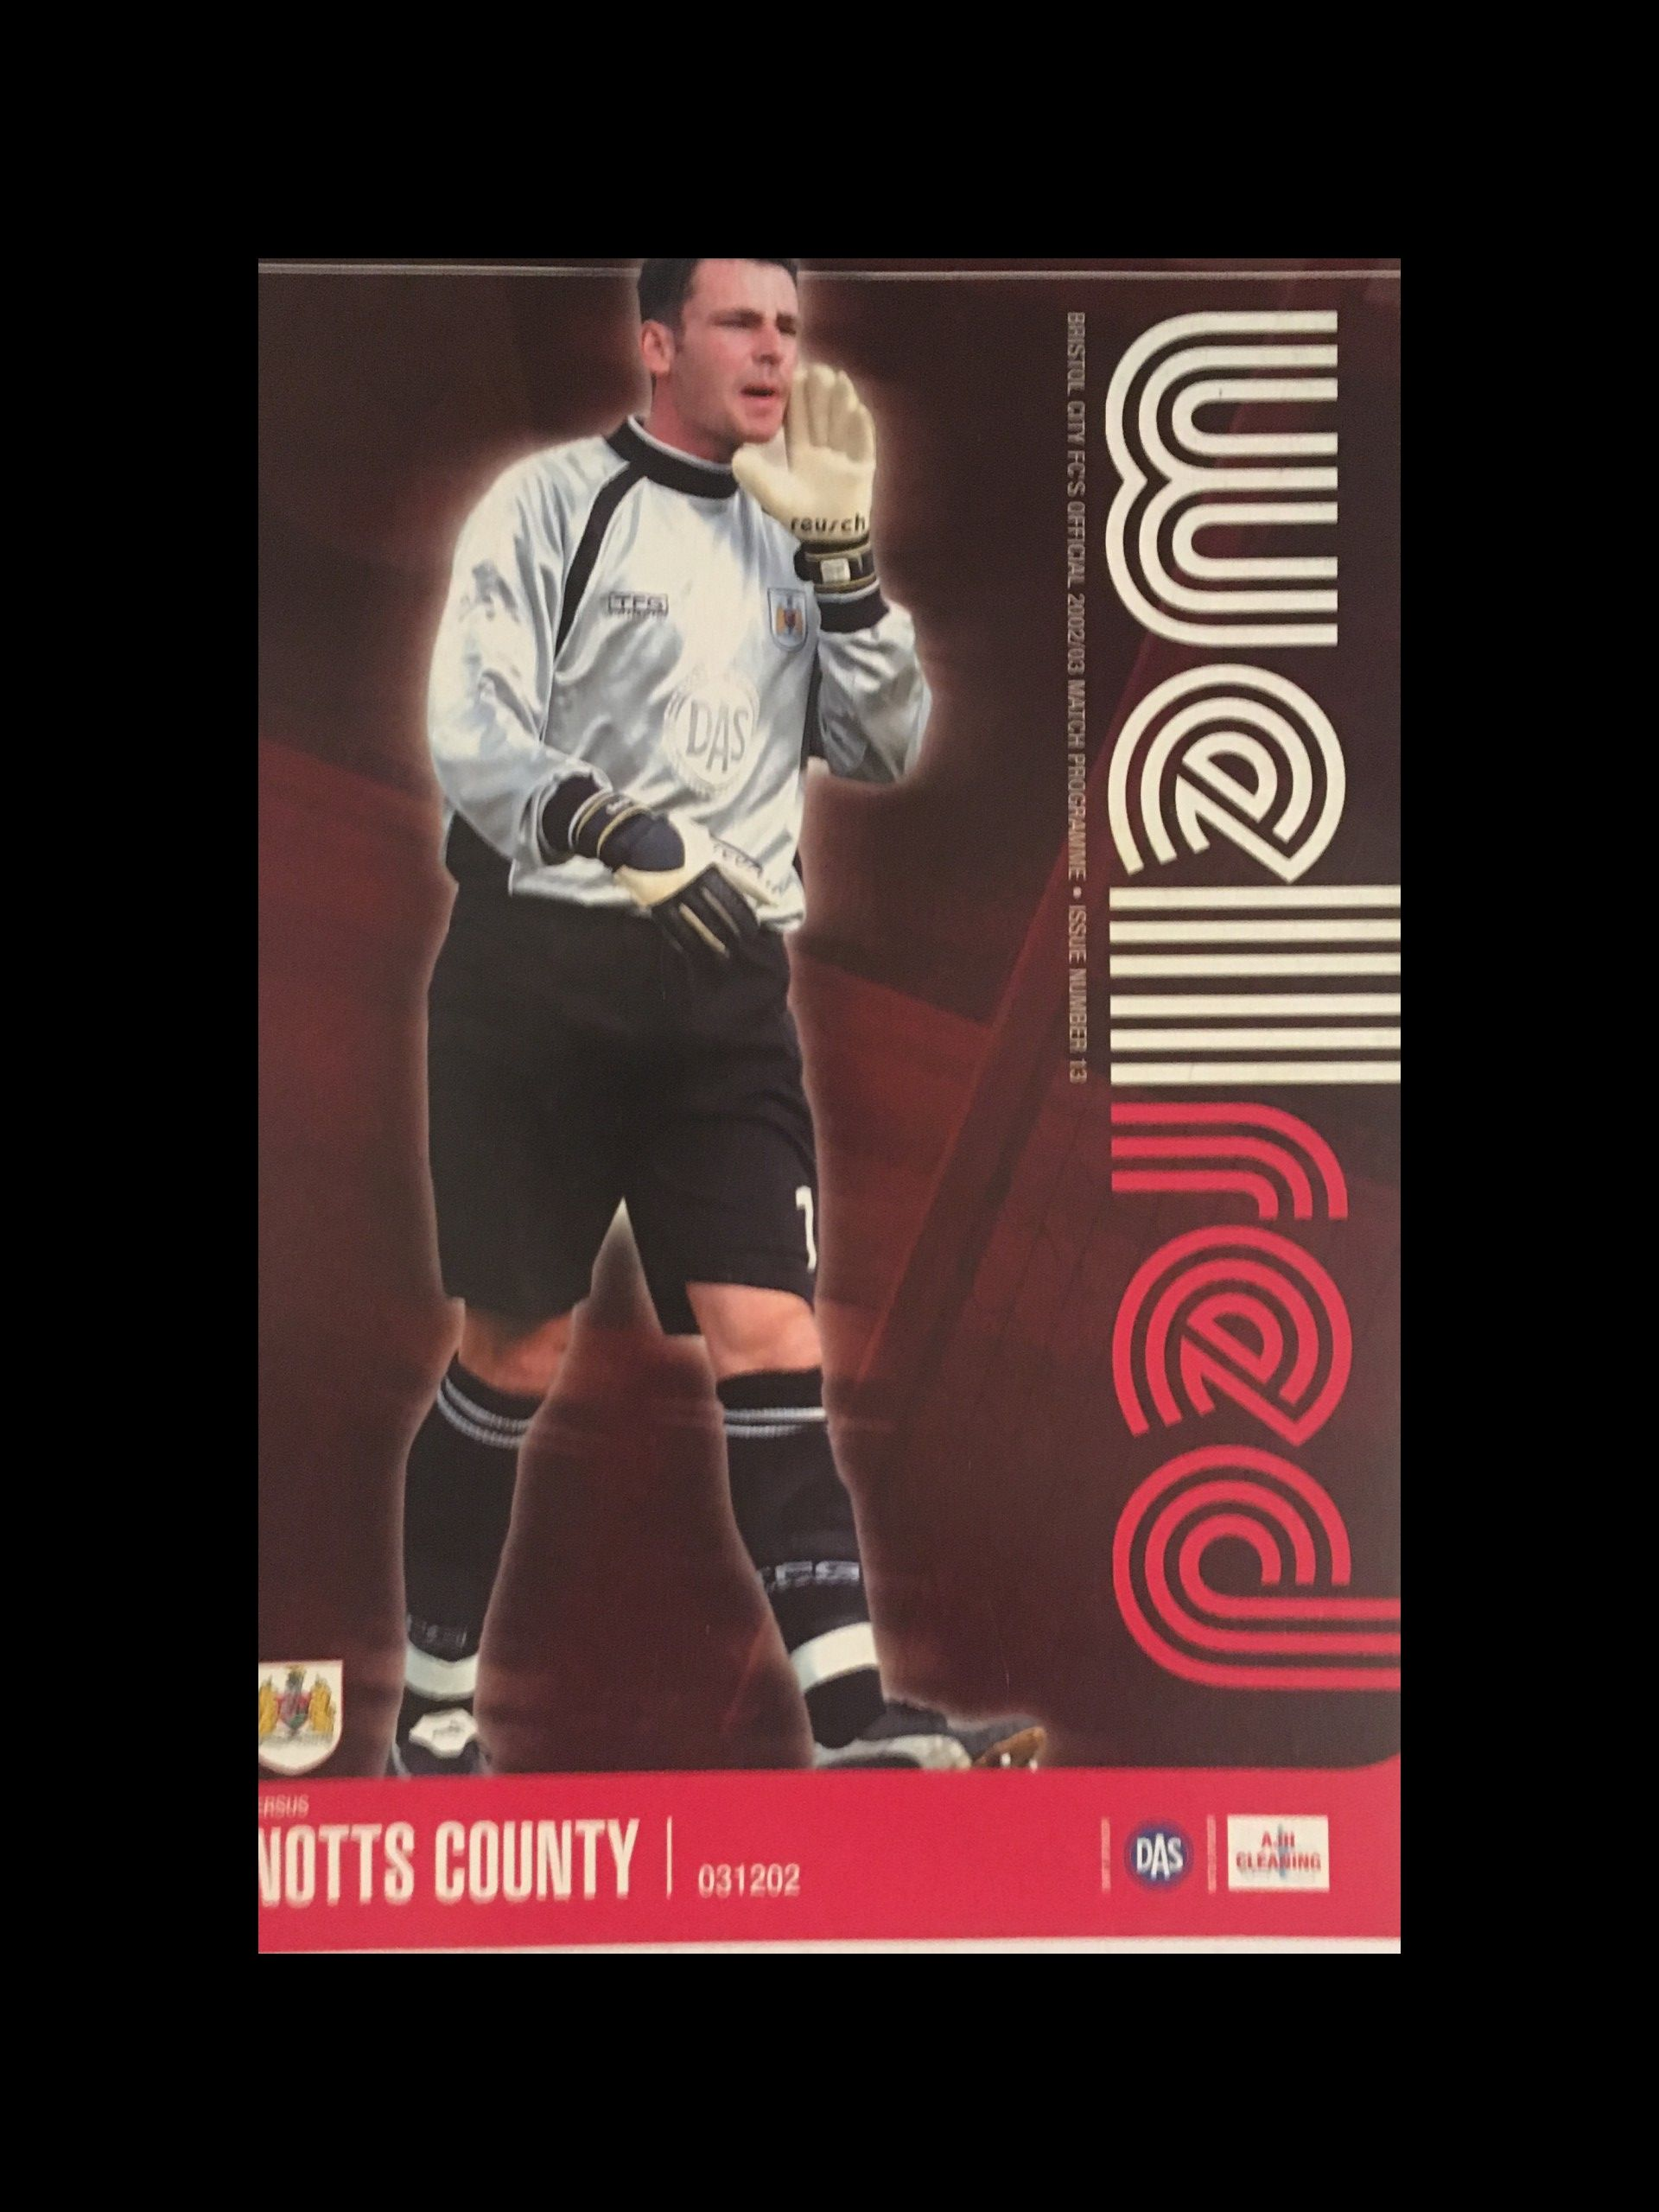 Bristol City v Notts County 03-12-2002 Programme